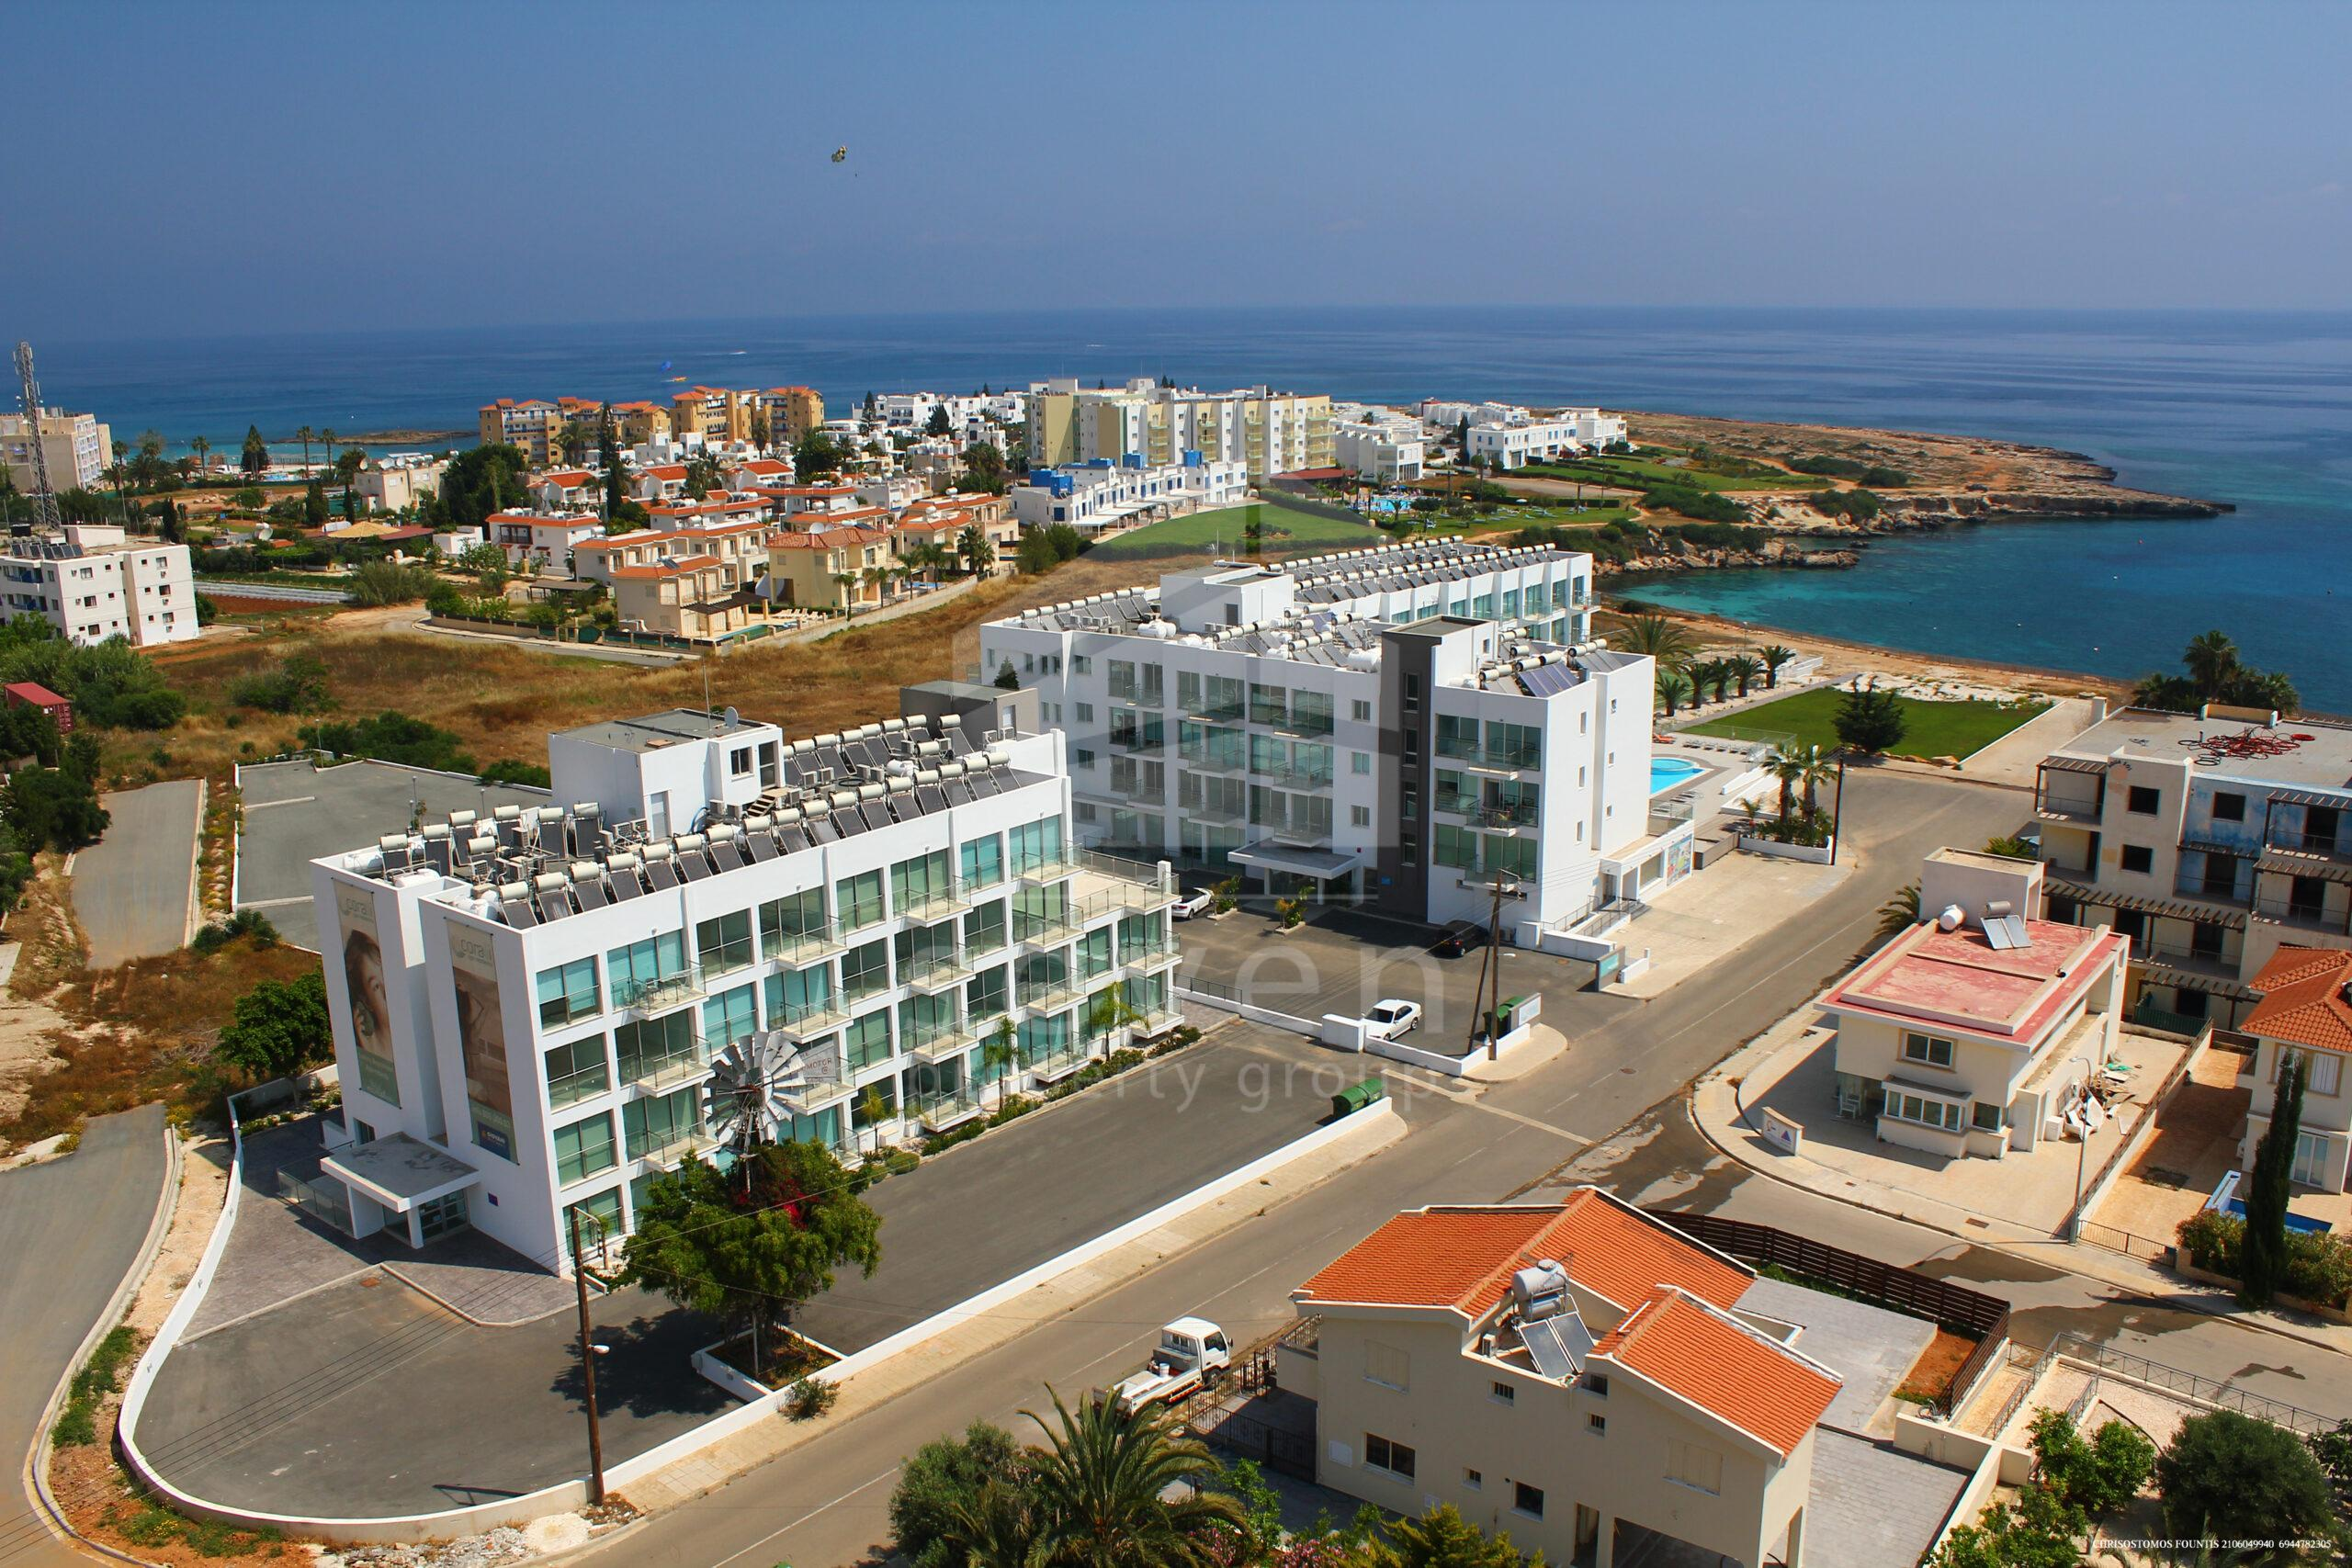 STUDIO &1 BED APARTMENTS FOR SALE IN PROTARAS